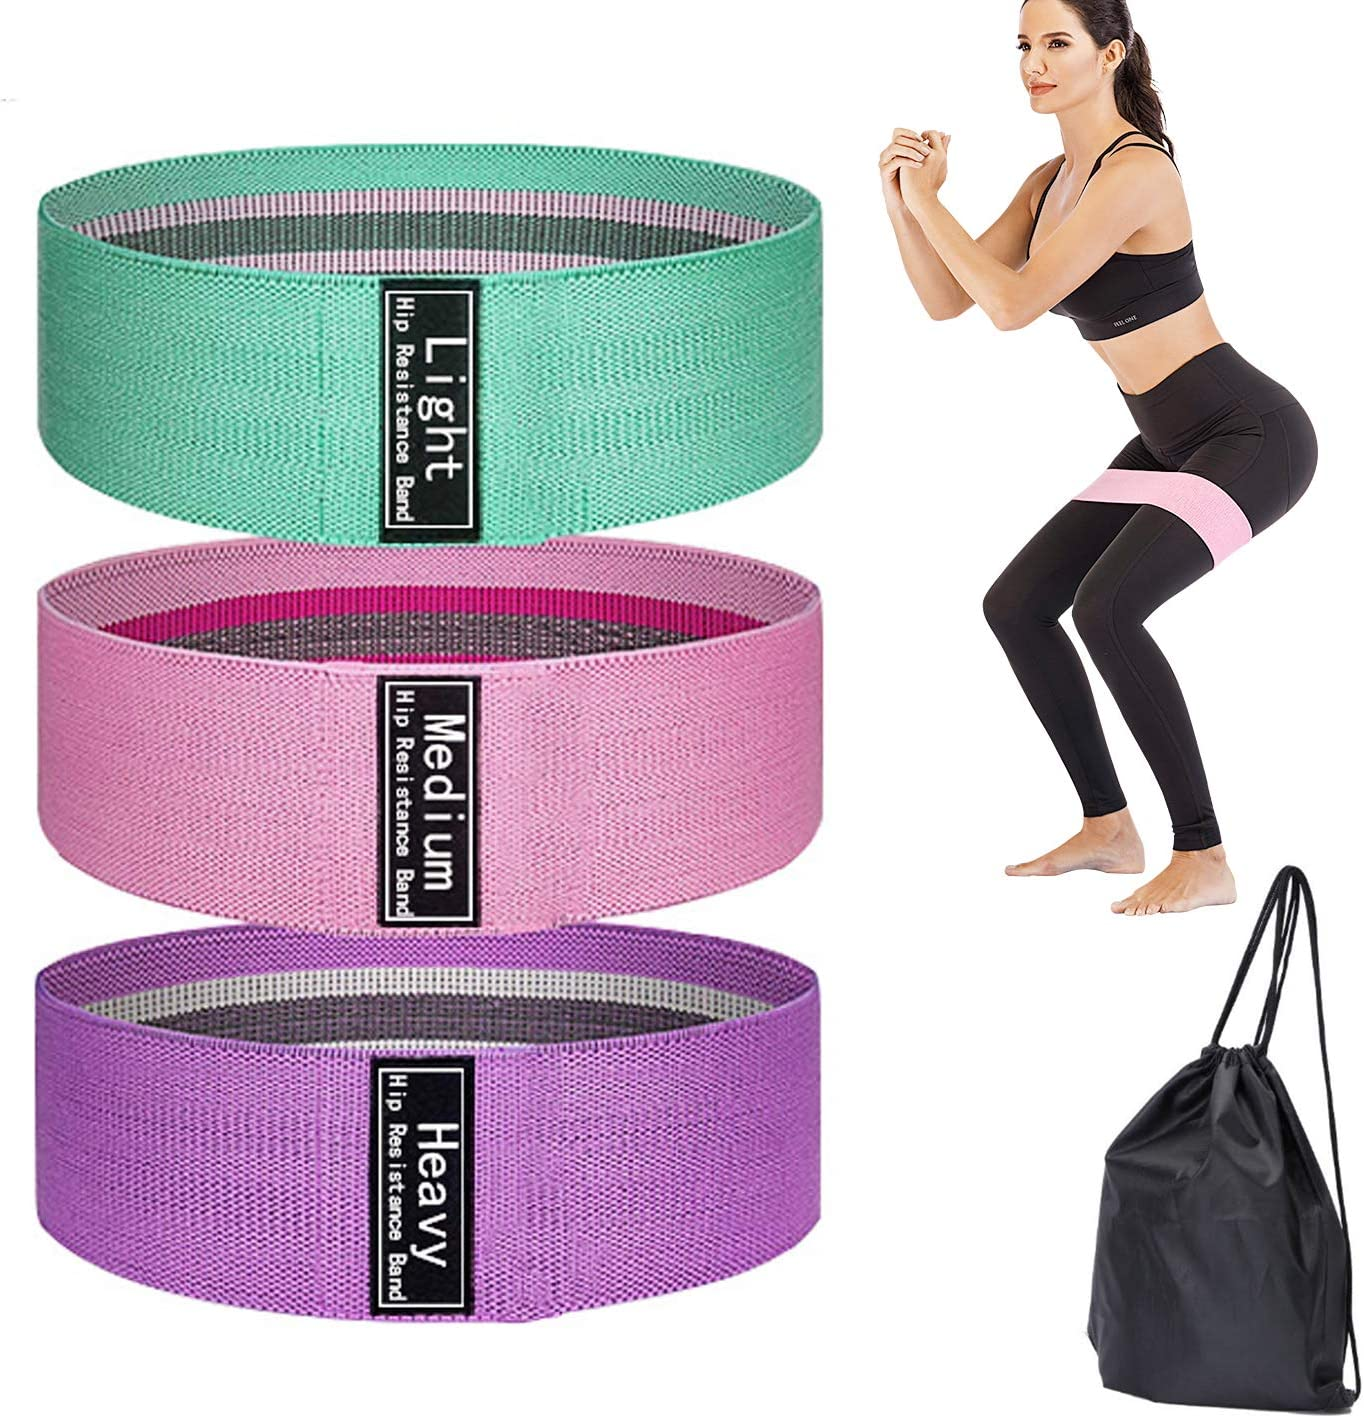 MAOXIC 3 pcs Resistance Bands Set and for Legs Butt Spor Booty 2021new Max 82% OFF shipping free